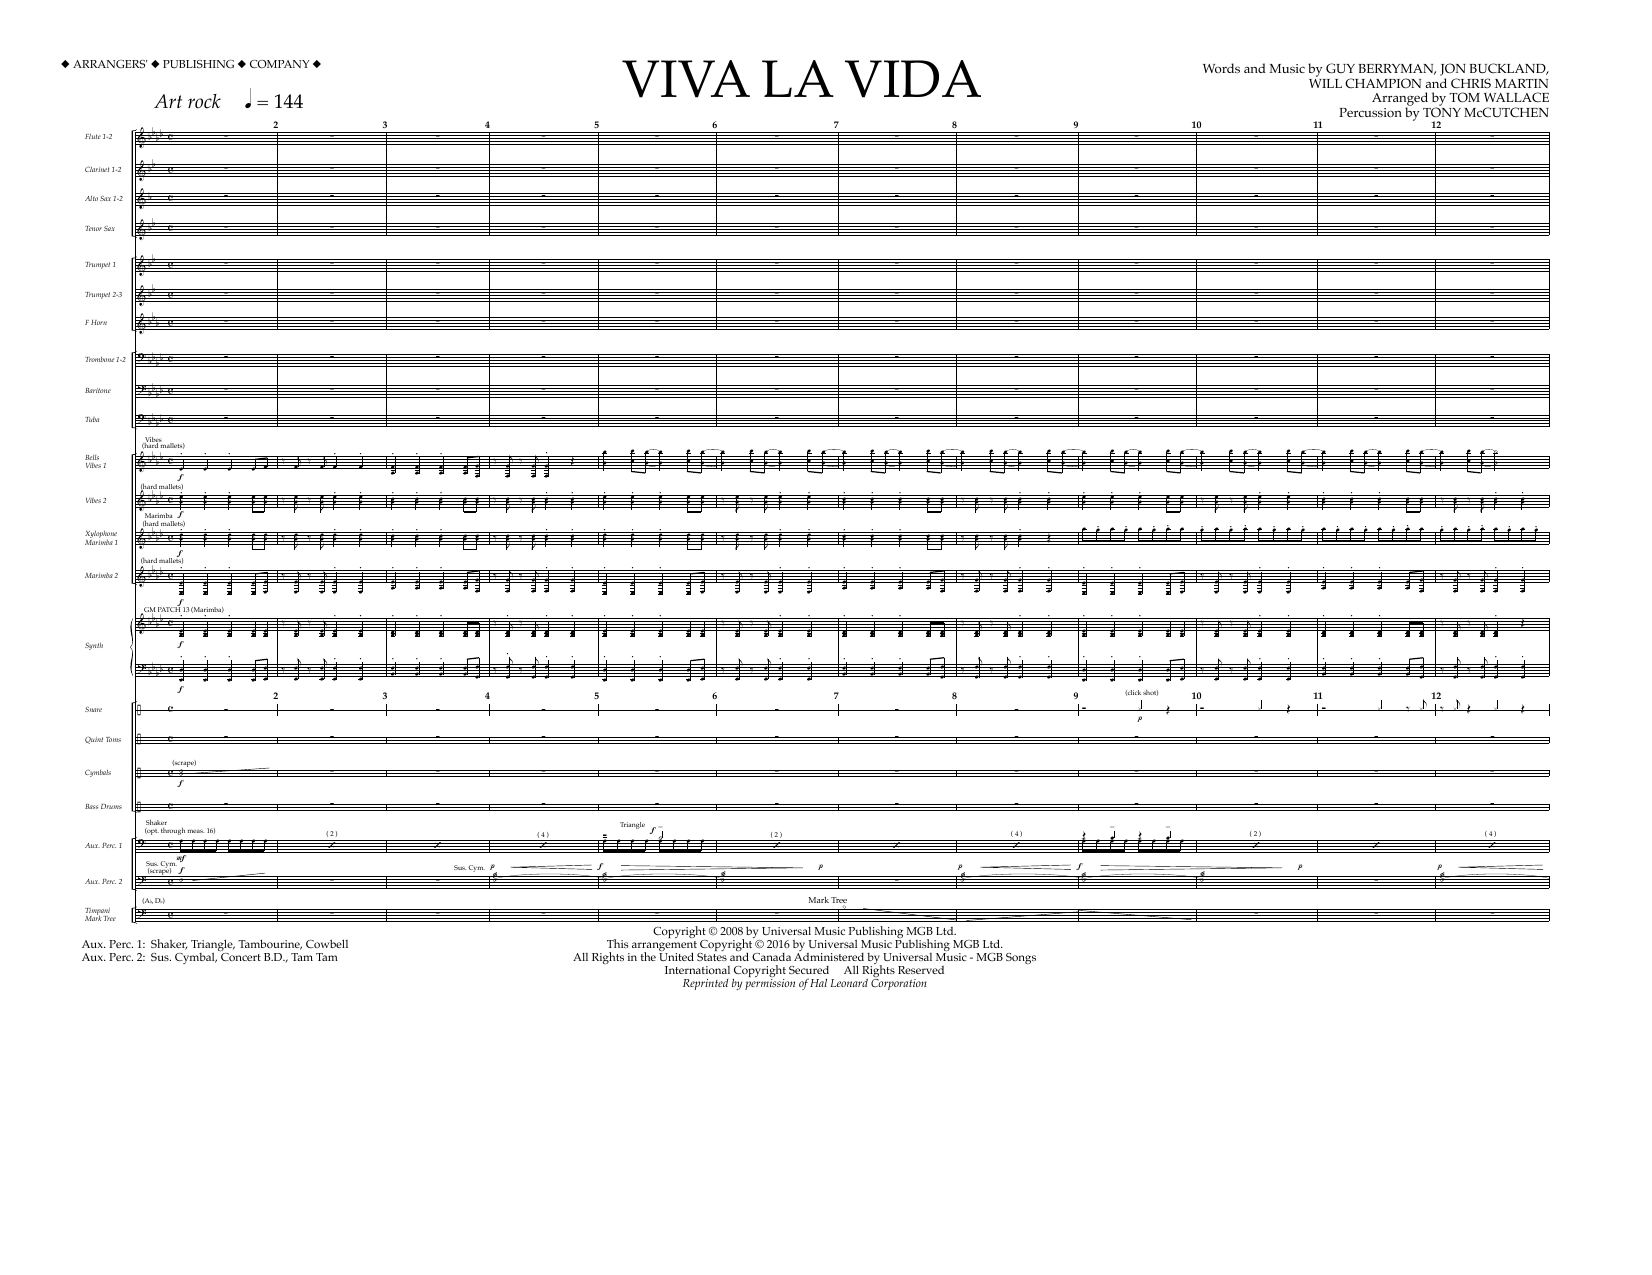 Coldplay - Viva La Vida - Full Score